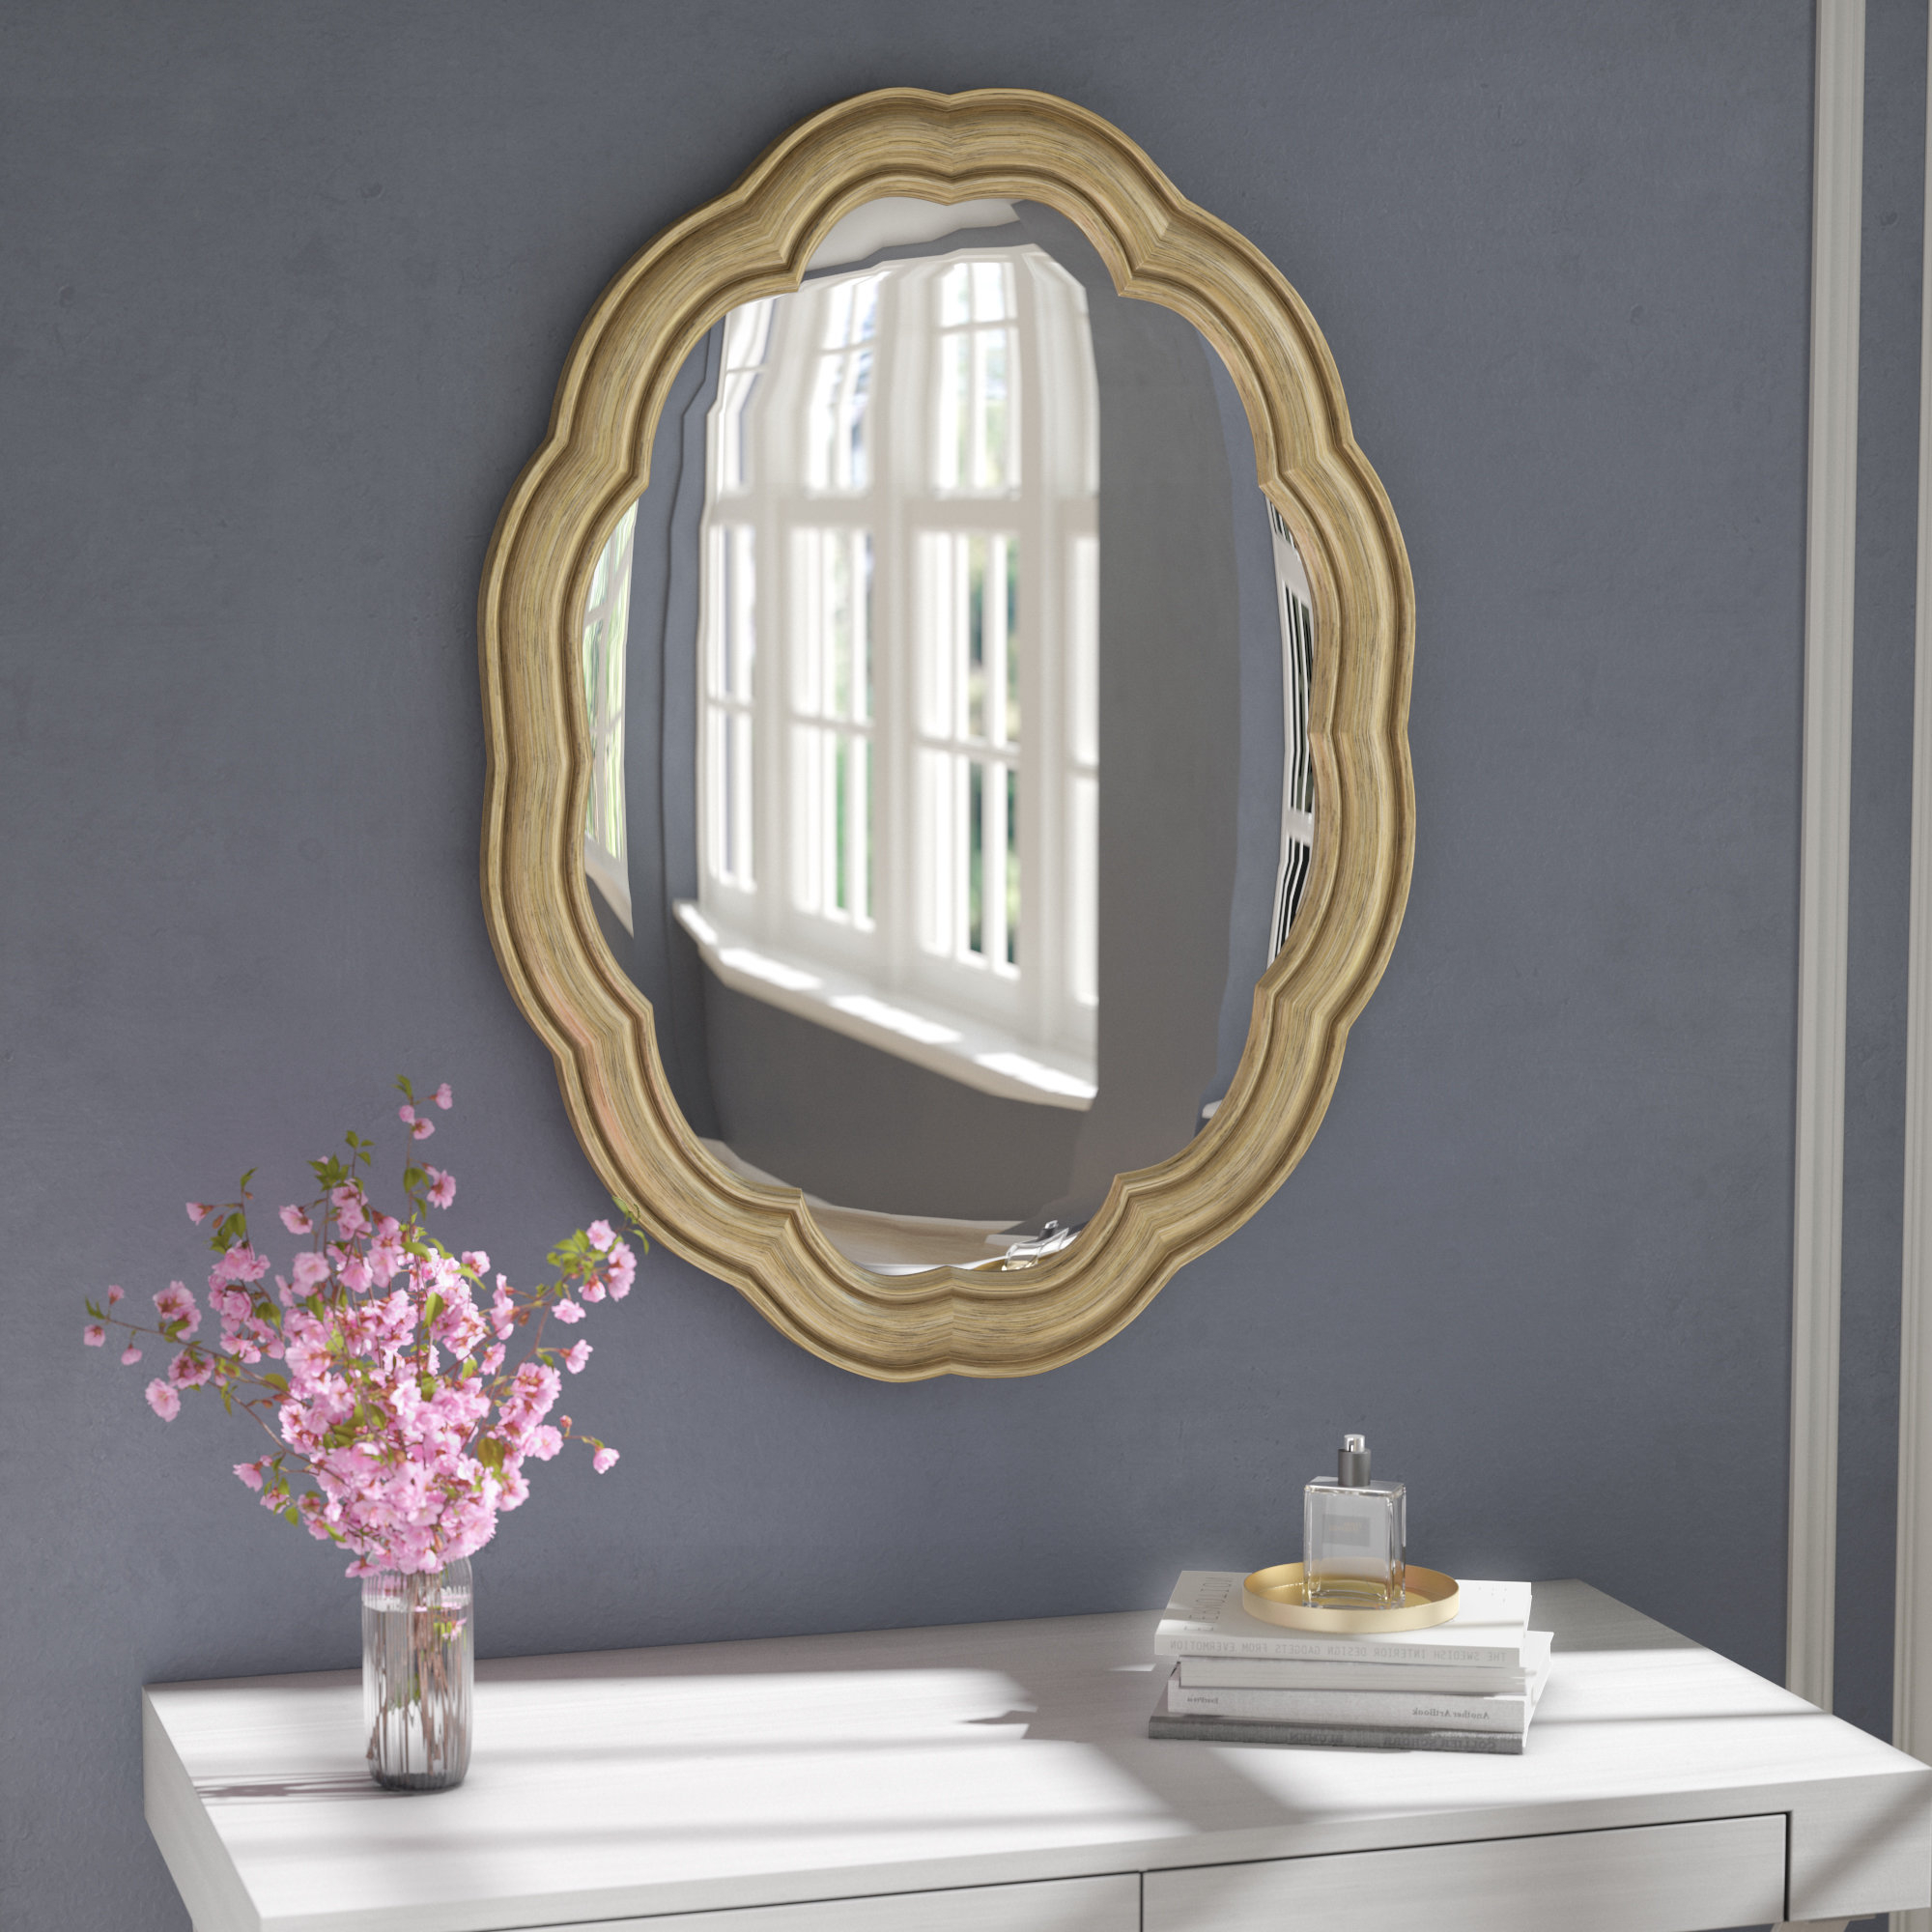 Latest Accent Wall Mirrors Pertaining To Glam Oval Accent Wall Mirror (View 17 of 20)